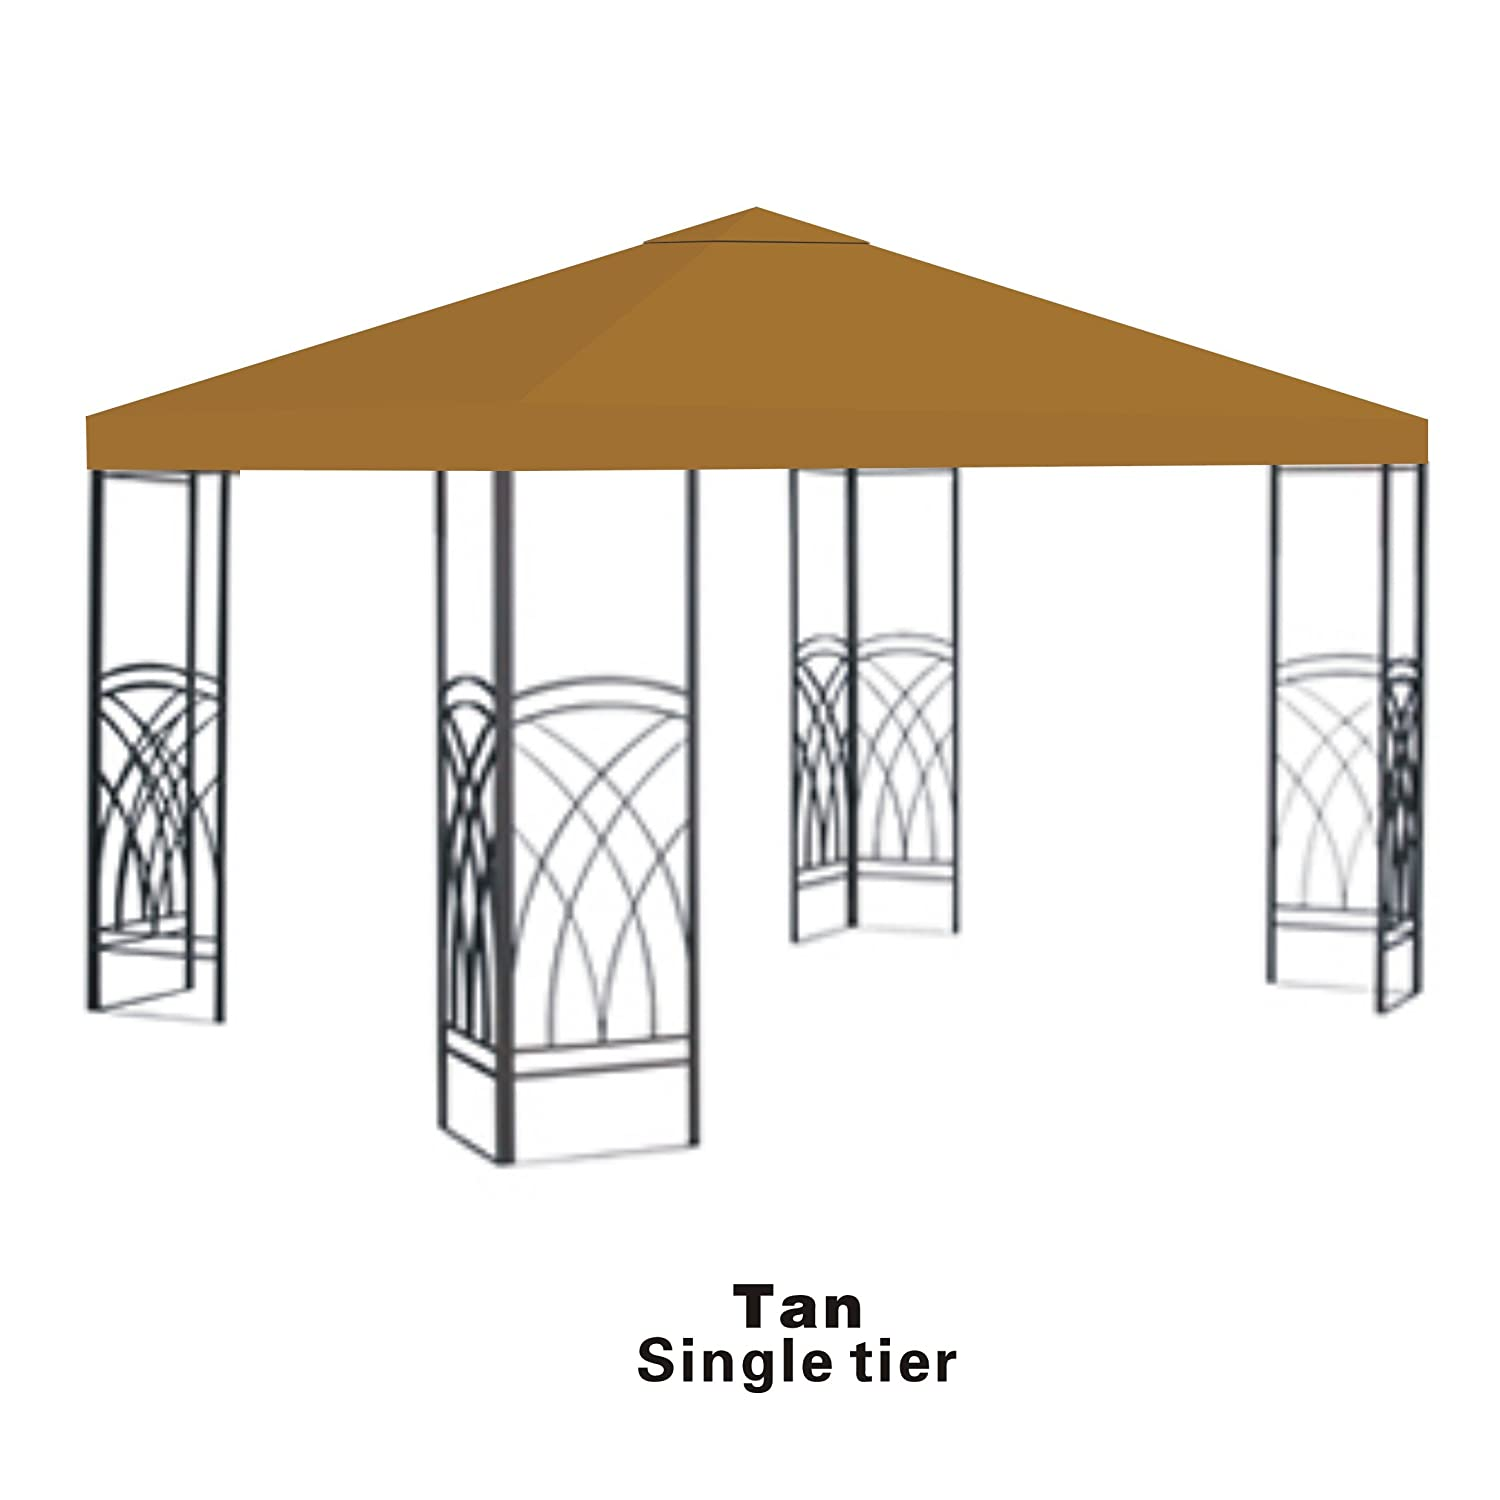 finest selection 7506f e529c Strong Camel Replacement 10'X10'gazebo canopy top patio pavilion cover  sunshade plyester single tier-tan